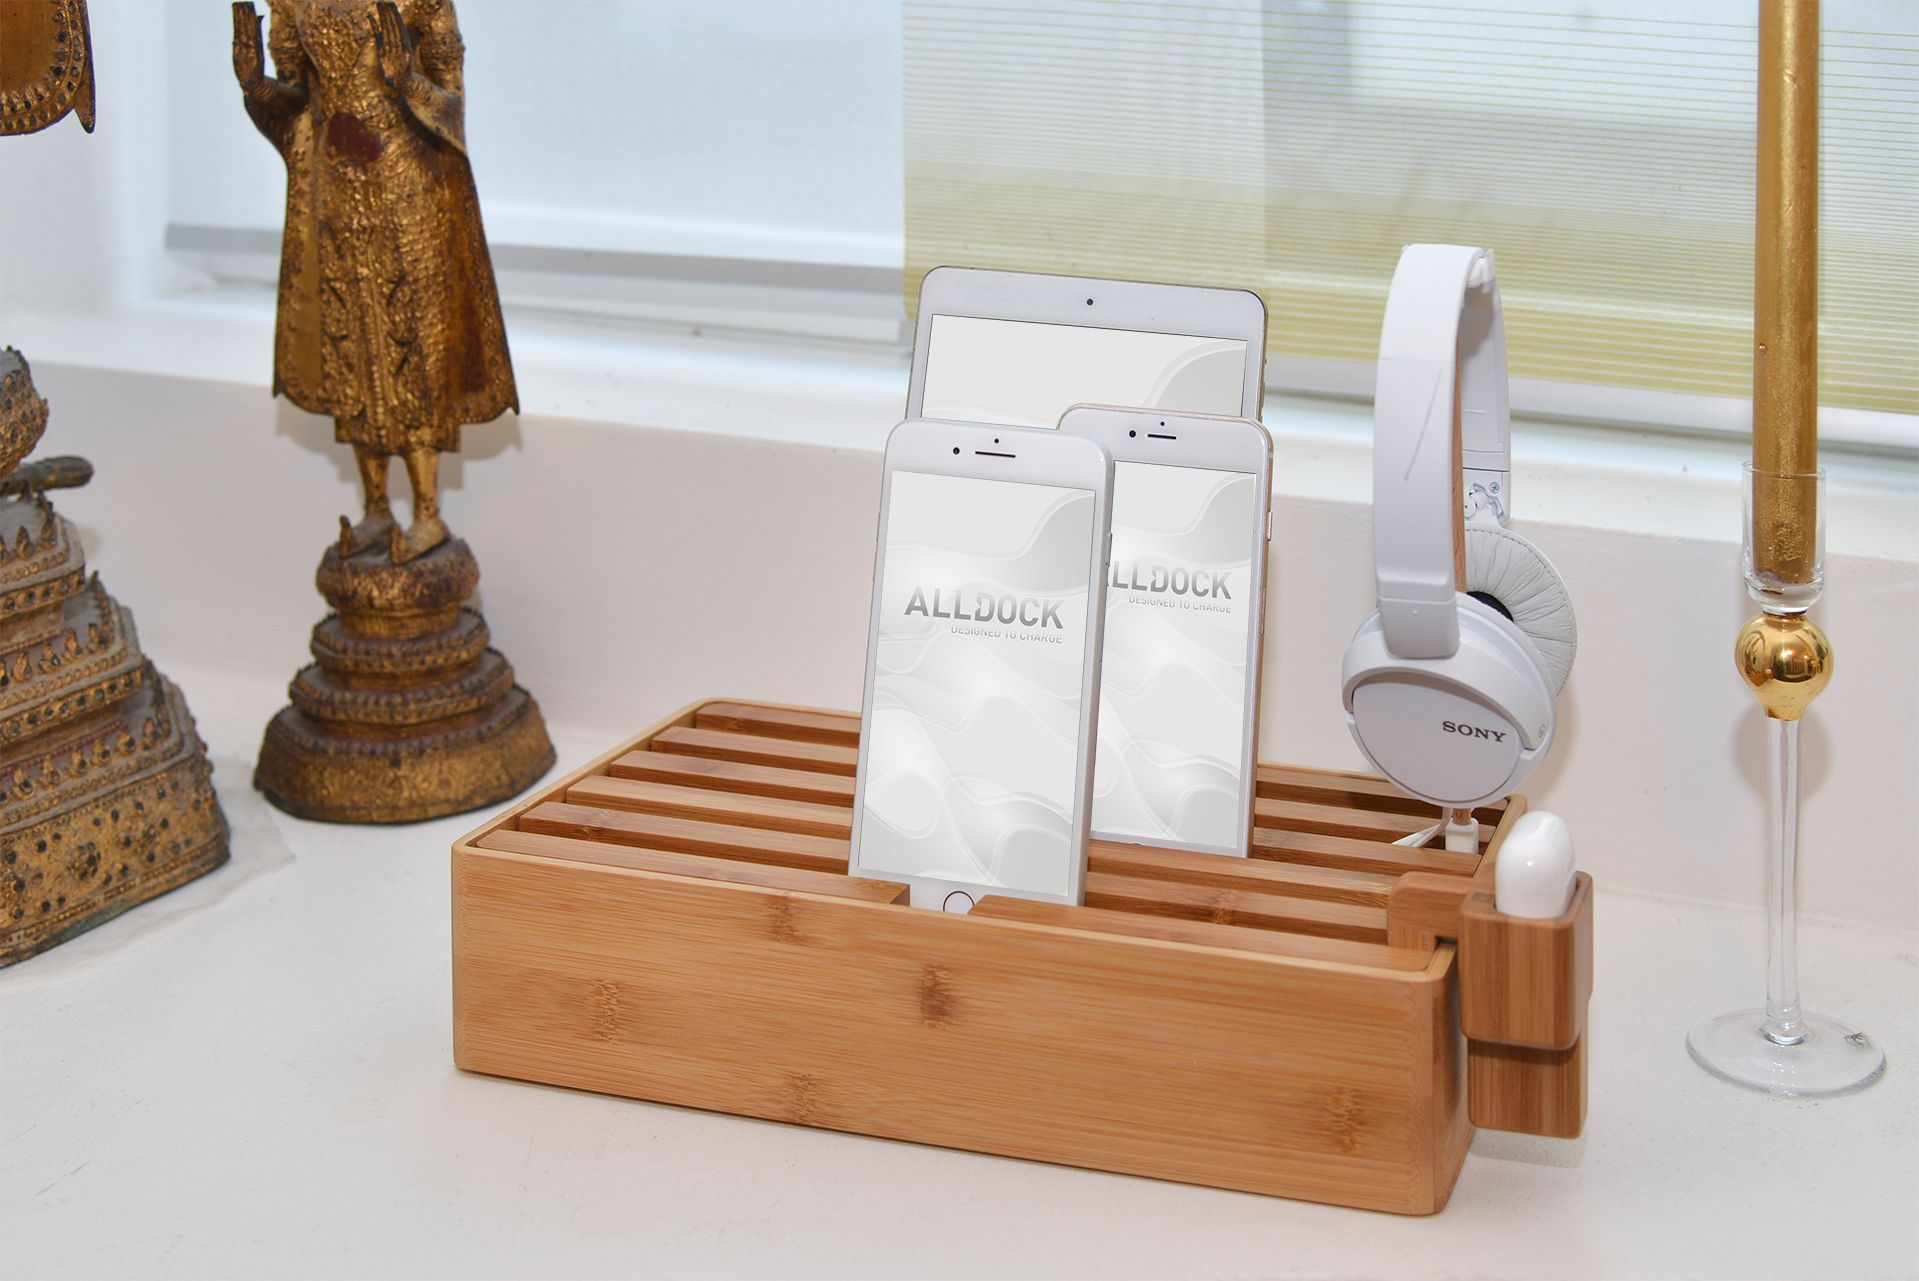 Dittrich-Design_Alldock-bamboo-large-bamboo-airpod